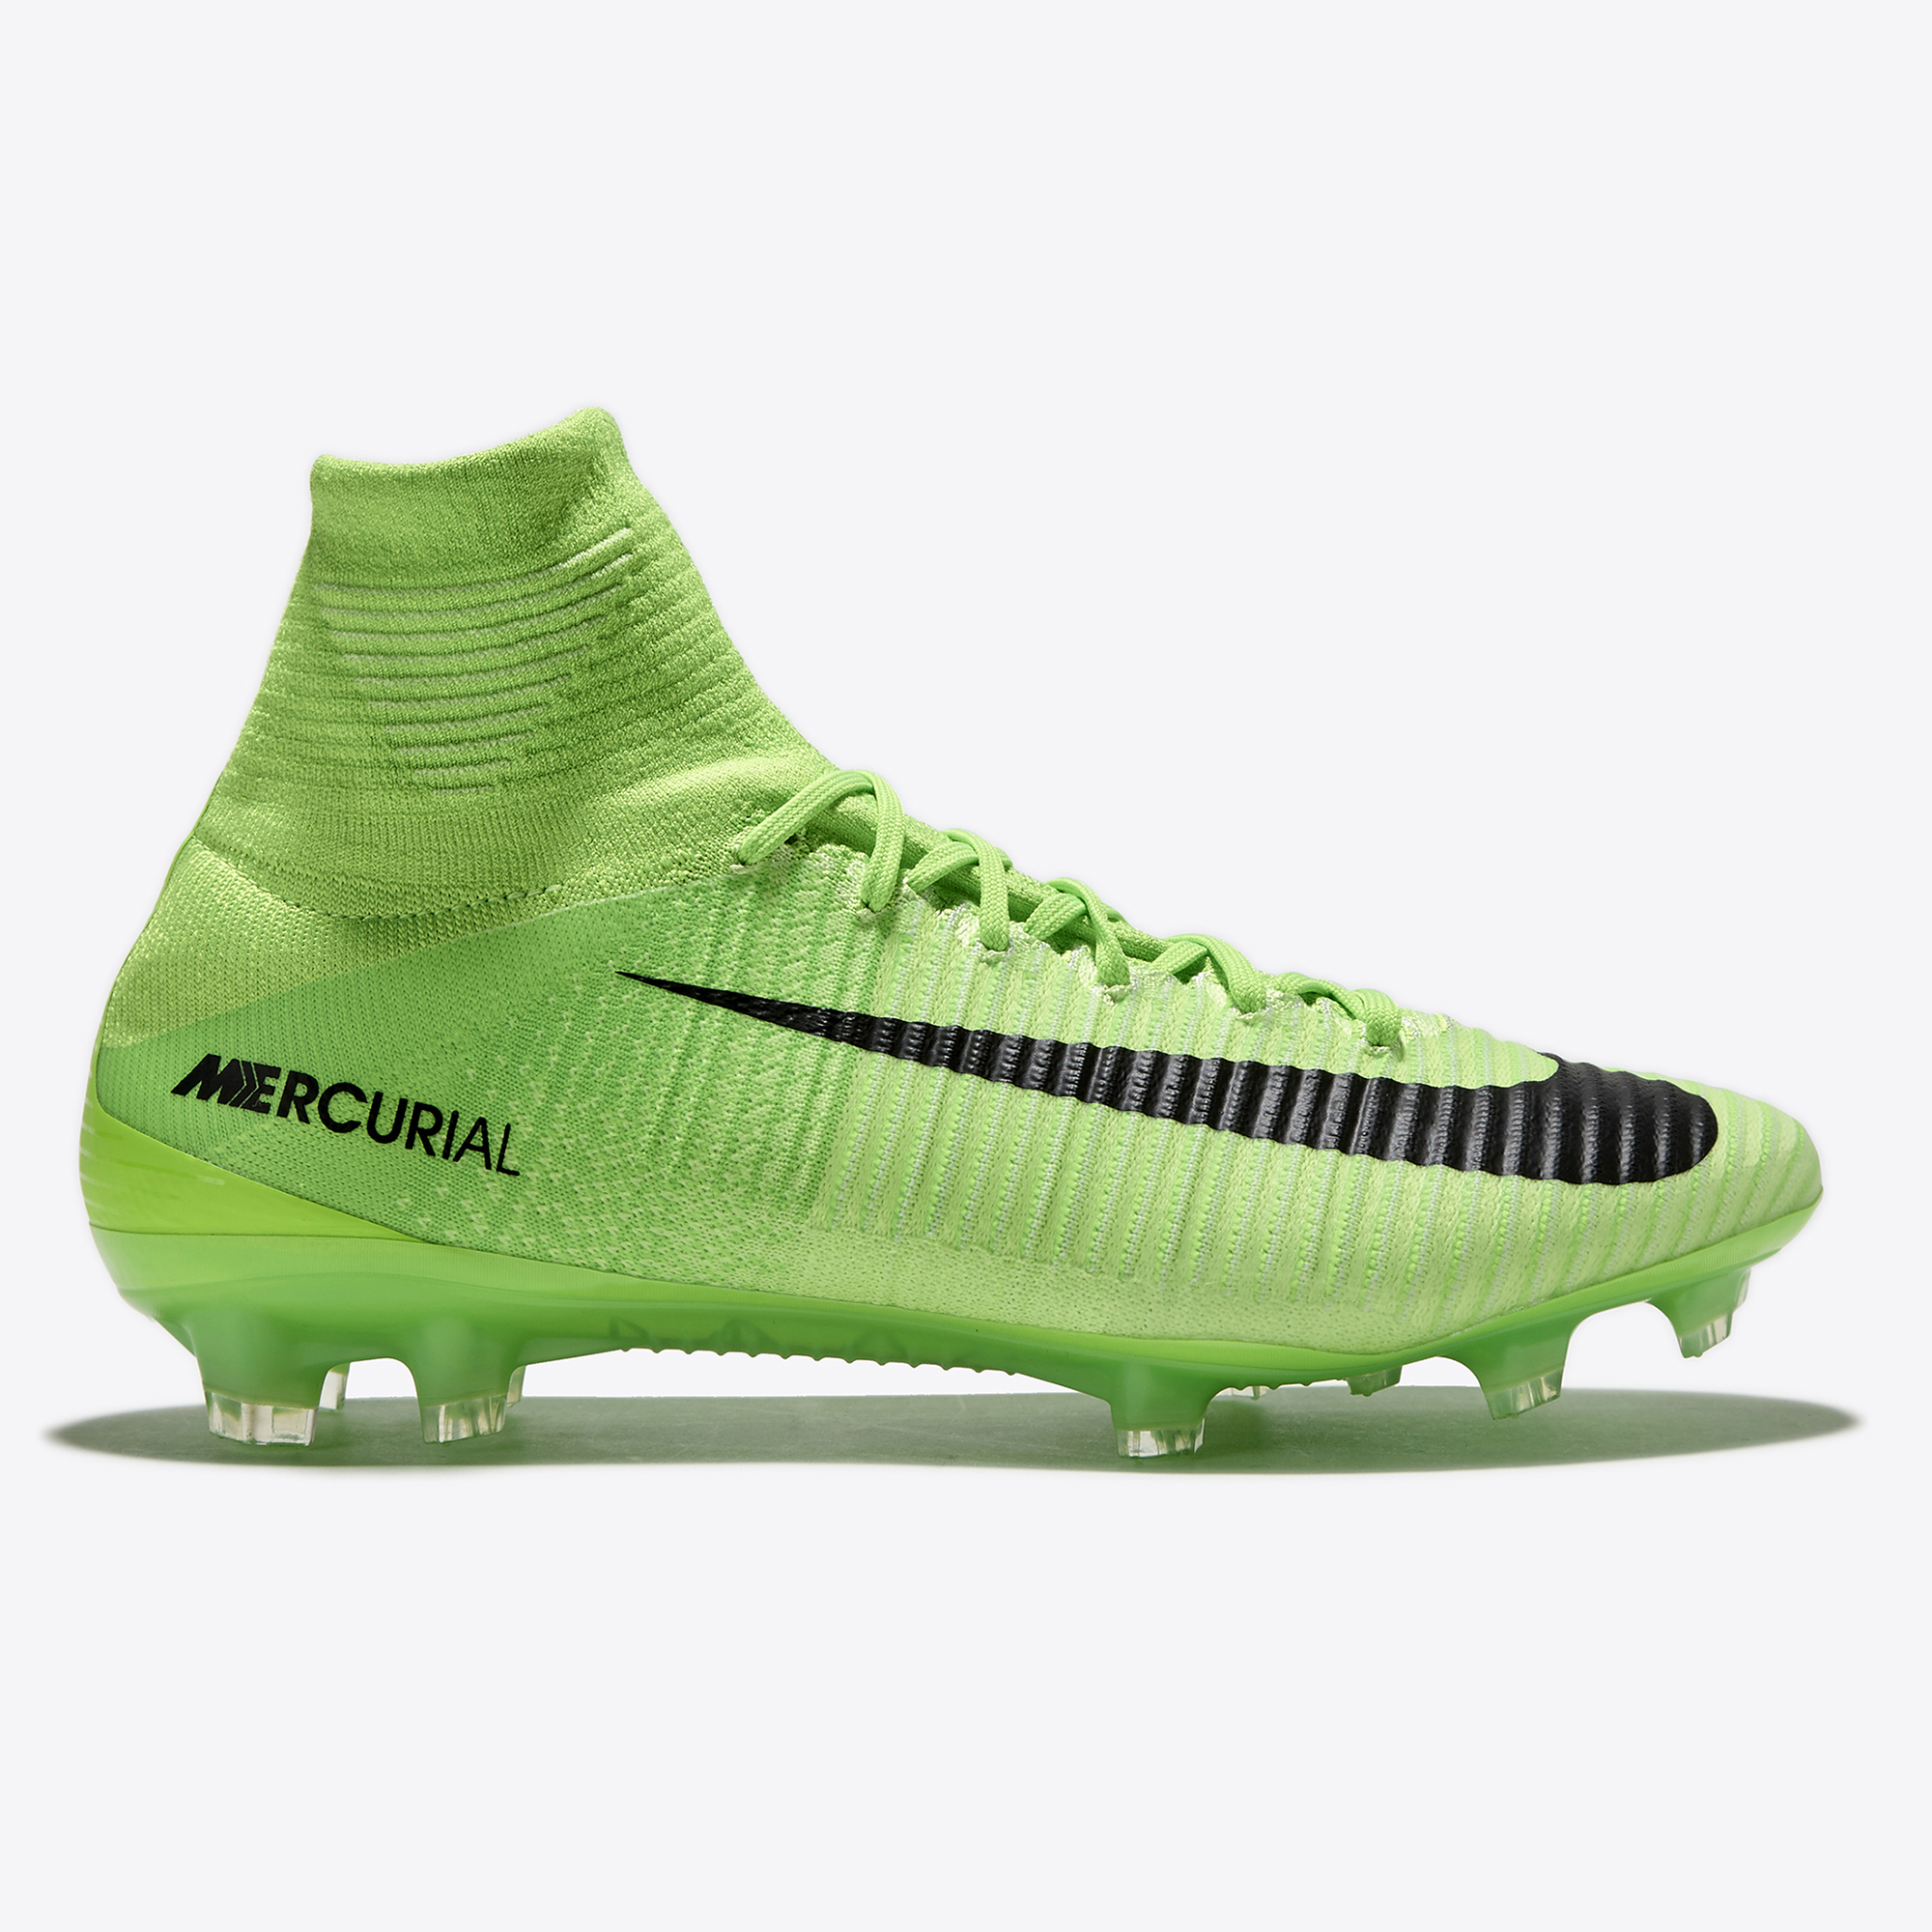 Nike Mercurial Superfly V Firm Ground Football Boots - Electric Green/